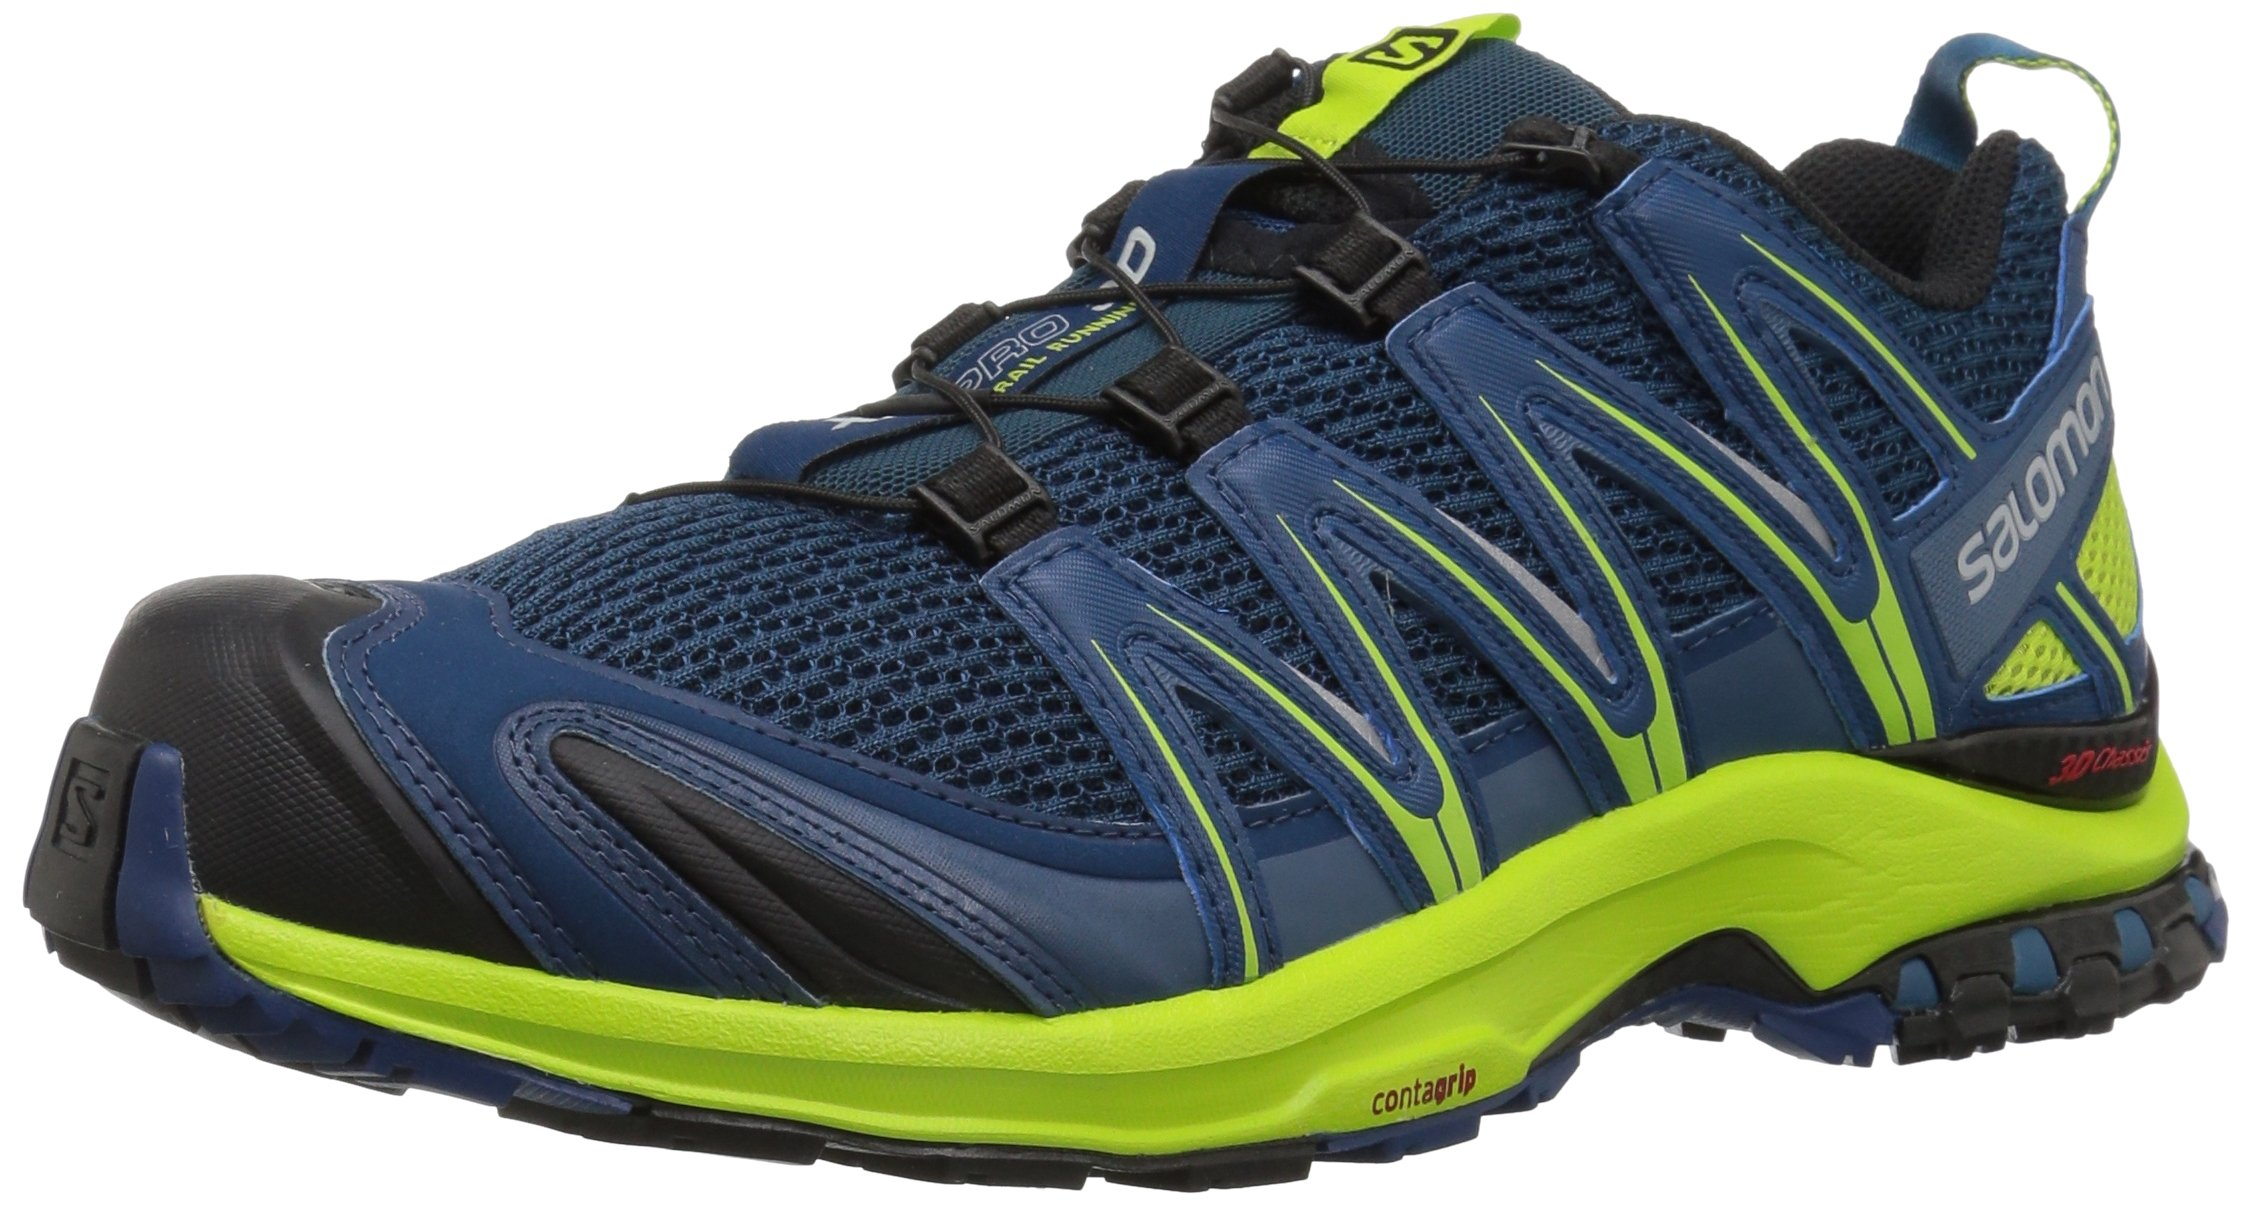 Salomon Men's XA Pro 3D Trail Running Shoes, poseidon, 11.5 M US